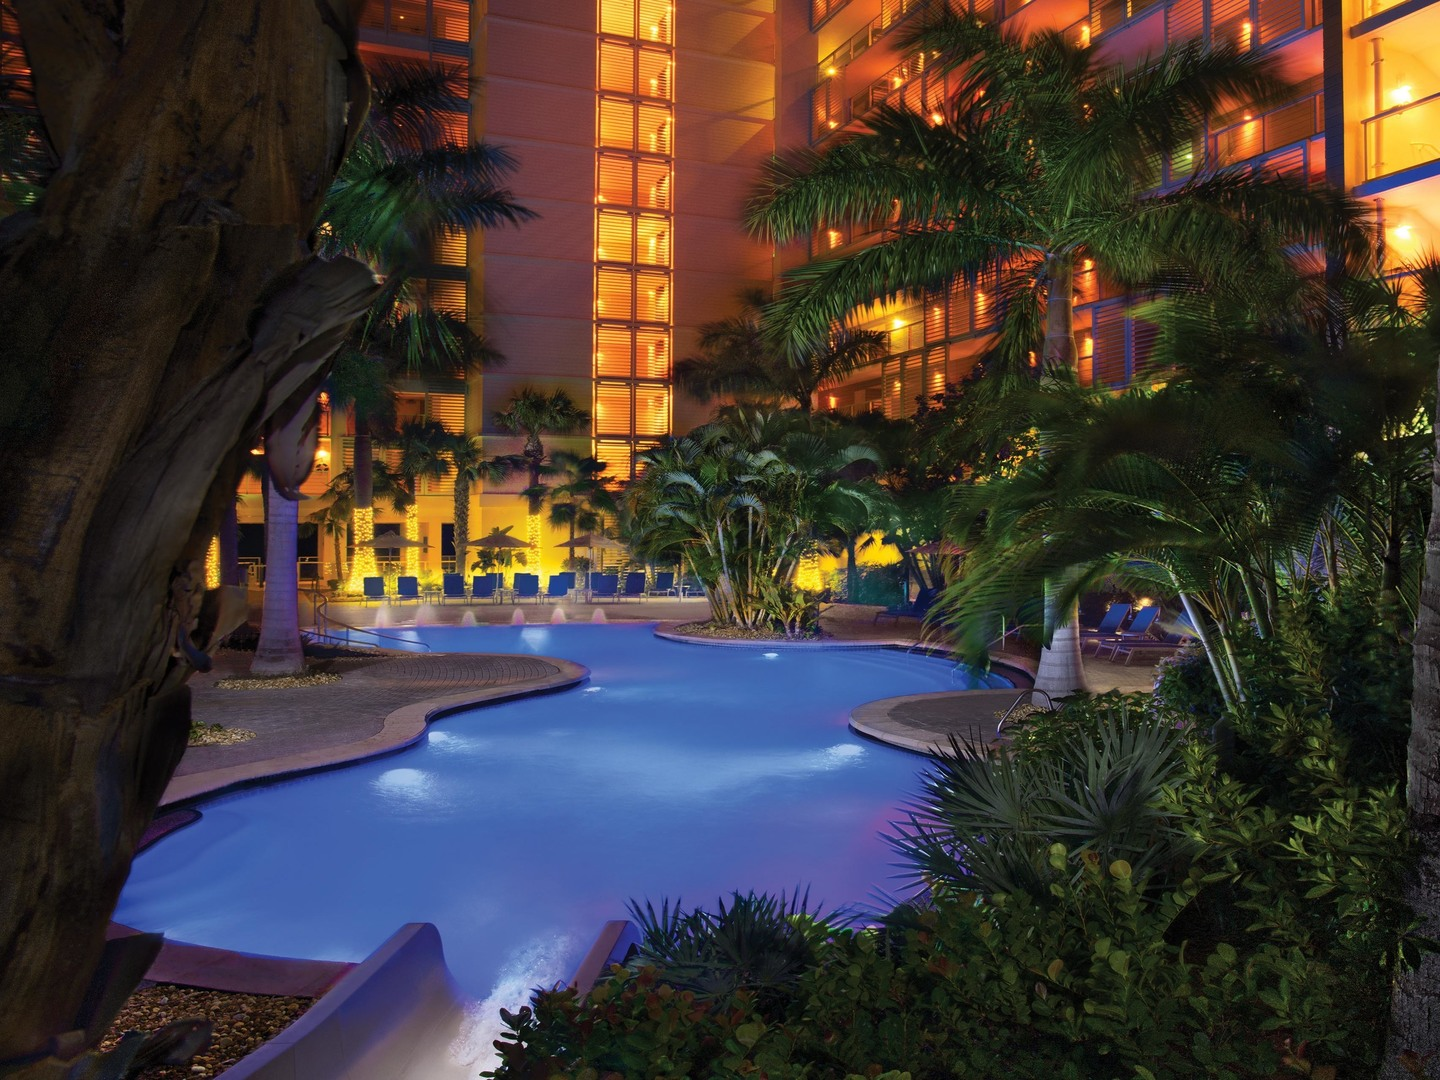 Marriott's Crystal Shores Grotto Pool. Marriott's Crystal Shores is located in Marco Island, Florida United States.